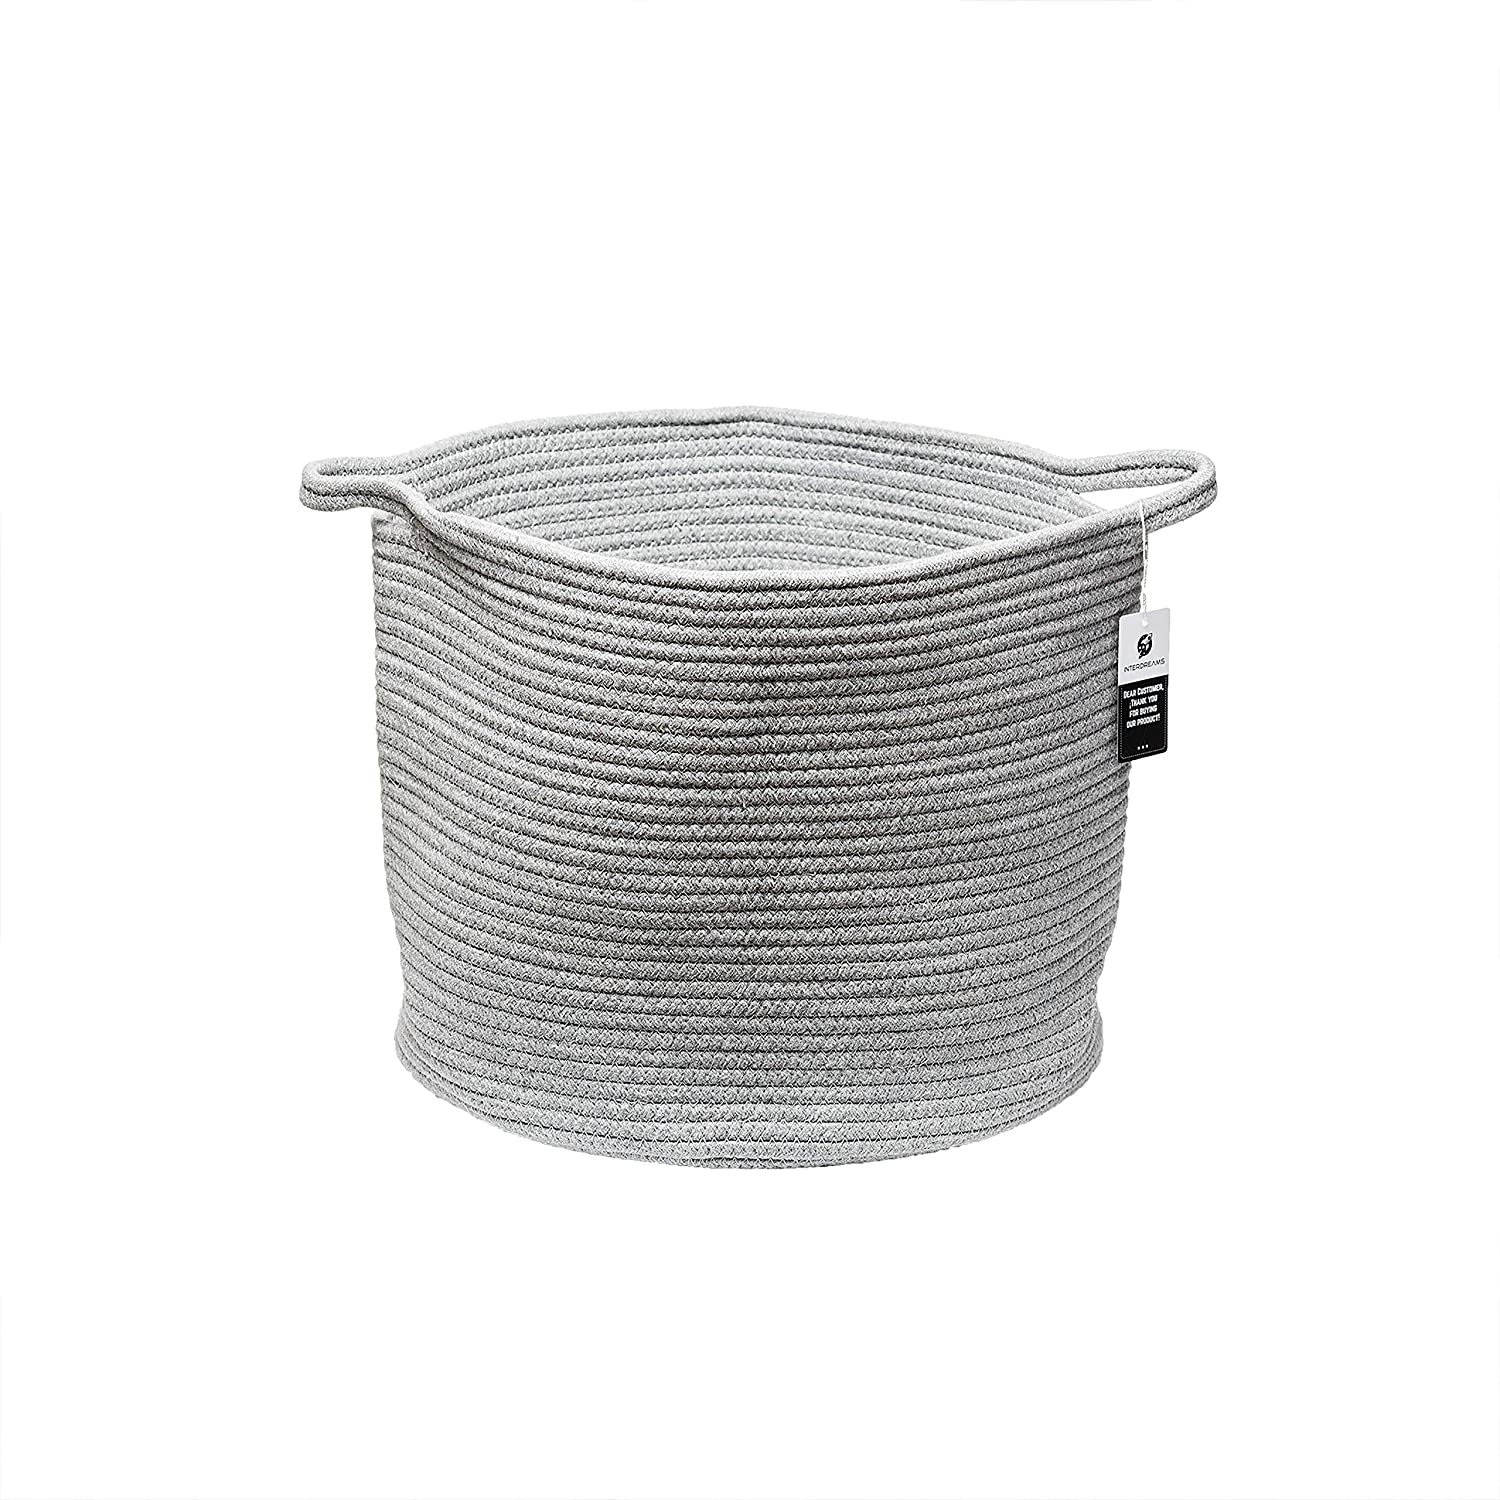 10e4e06c64dd Amazon.com: Extra Large Cotton Rope Storage Baskets Woven Toy Basket for  Nursery, Grey Wicker Basket for Fabric, Round Baby Diaper Laundry Basket  with ...